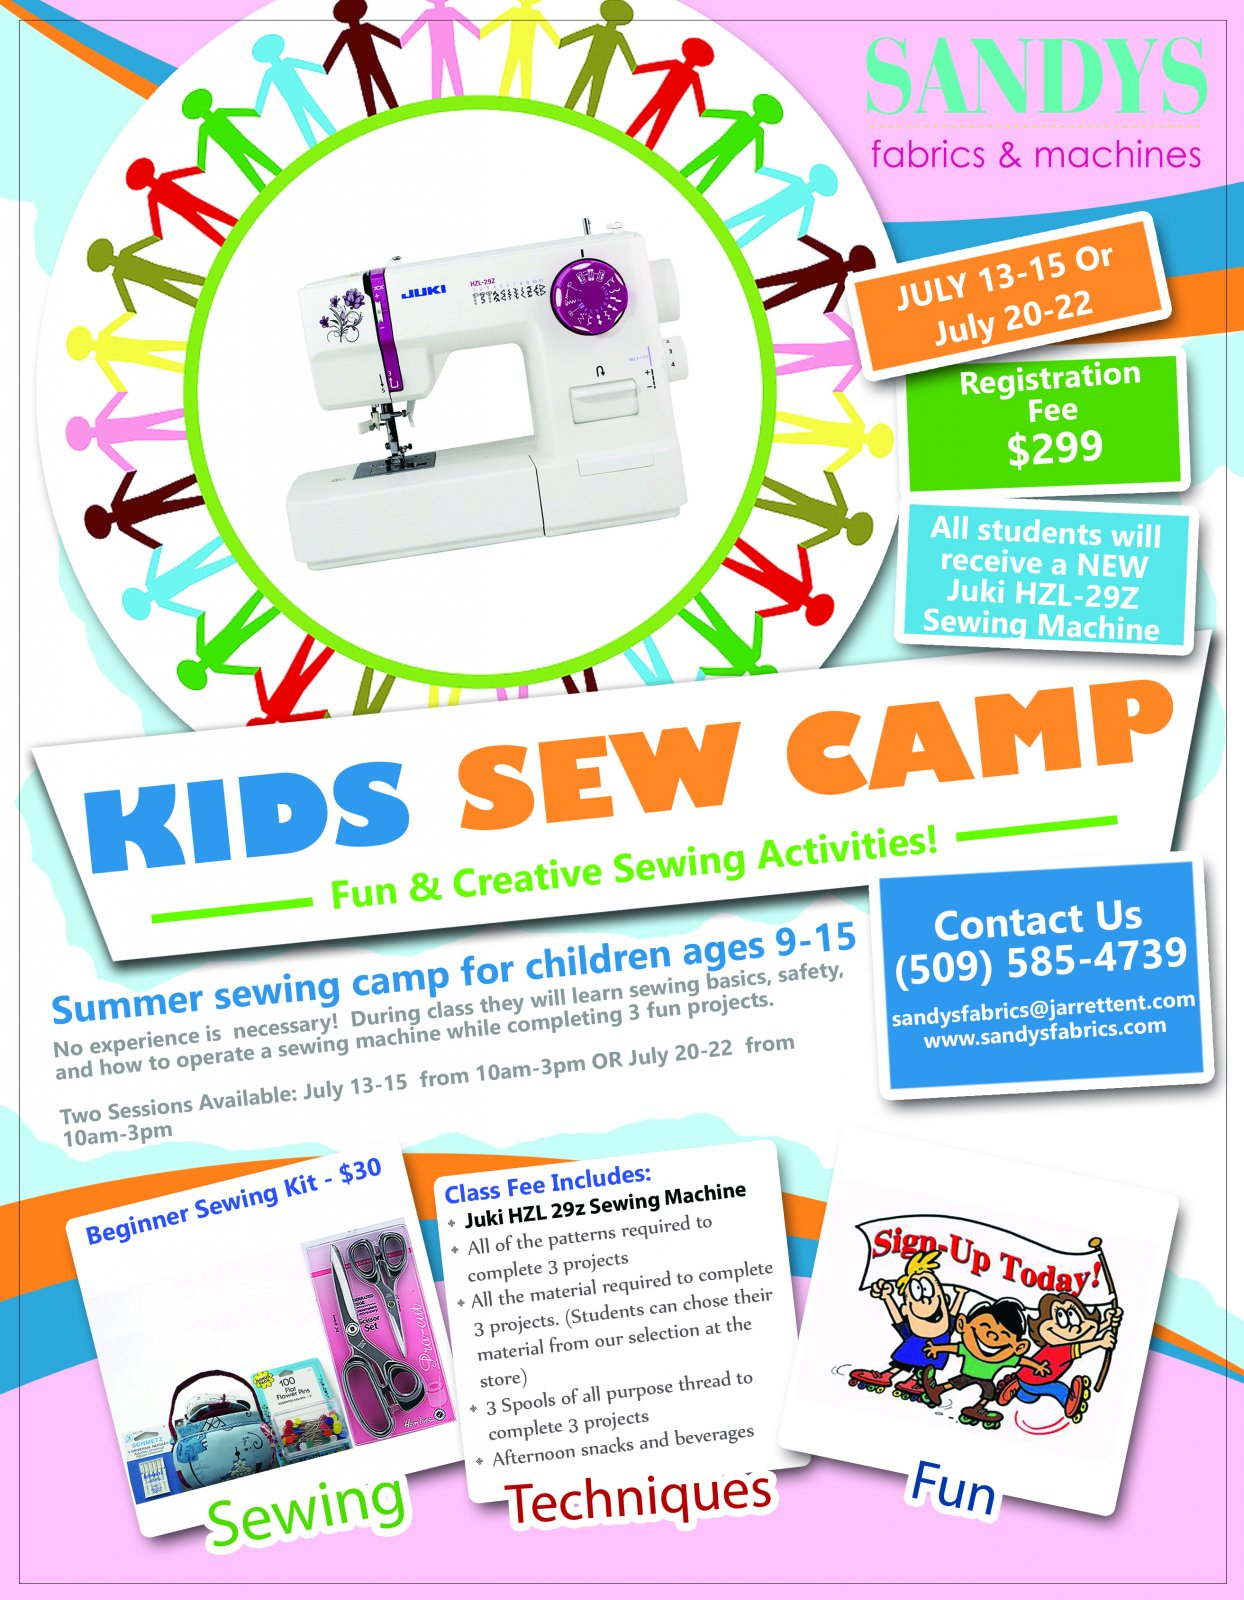 Kids Sew Camp At Sandy's Fabrics & Machines In Kennewick, Washington